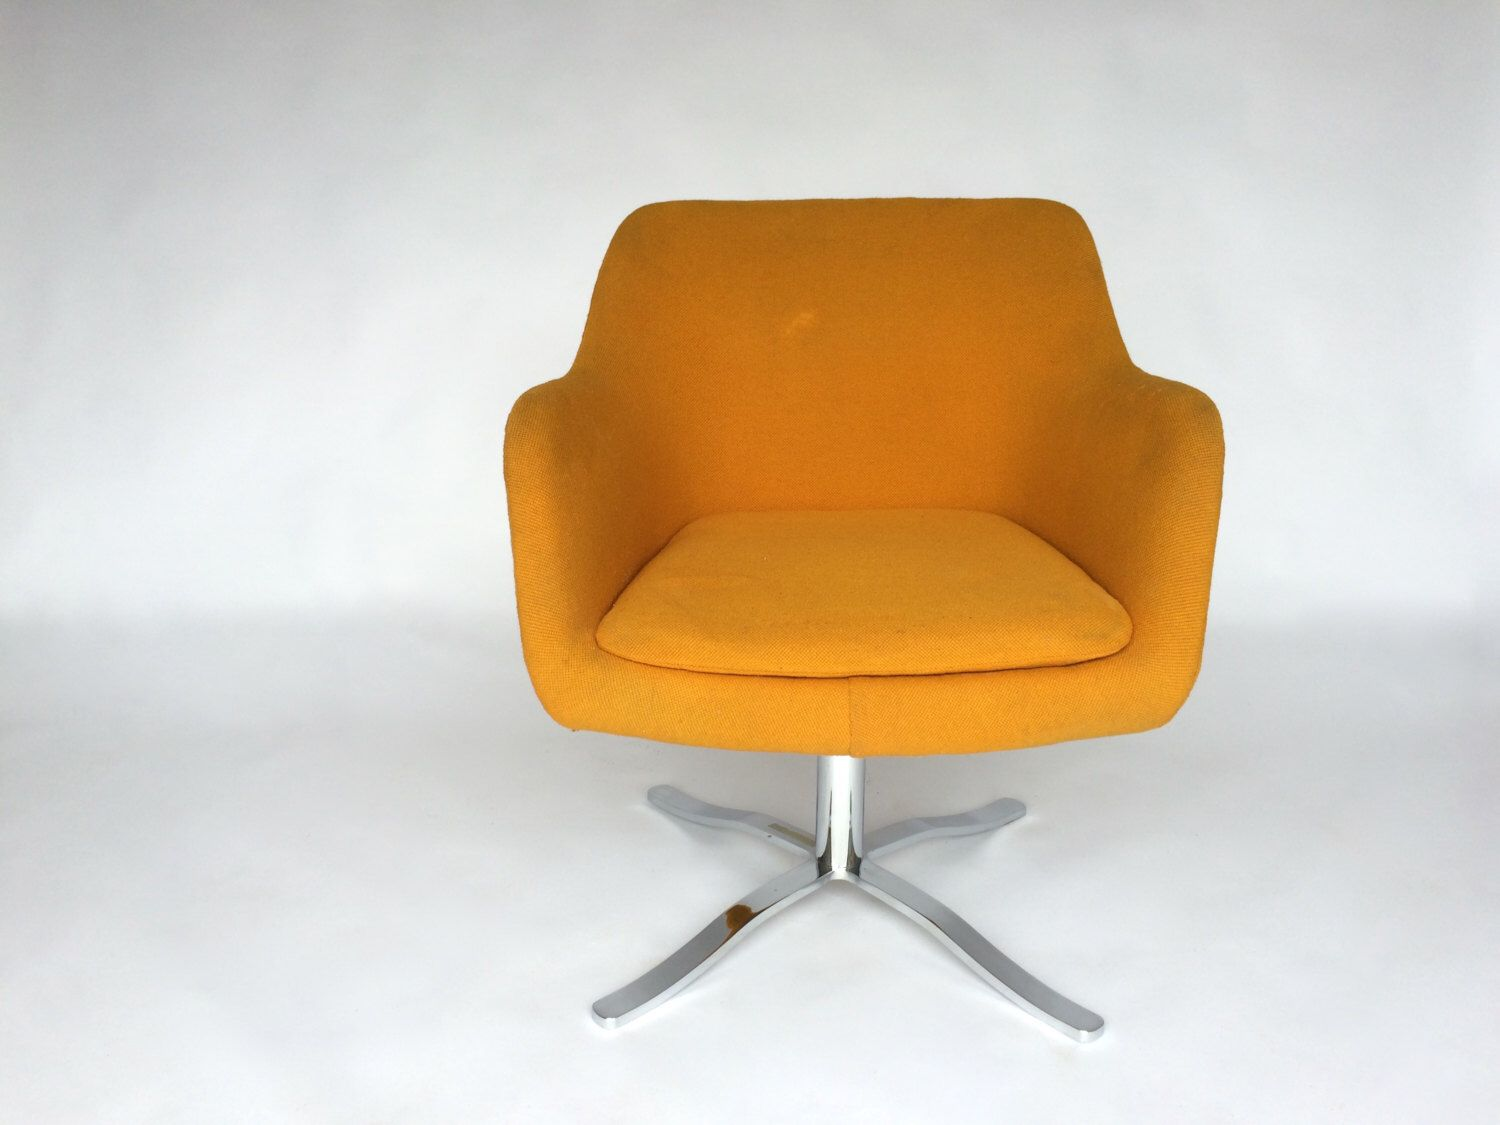 Vintage Nico Zographos Swivel Bucket Chair Alpha Flat Bar Chrome Base Mid  Century Modern 1960u0027s 60u0027s 60s Desk Chair Executive Office Chair